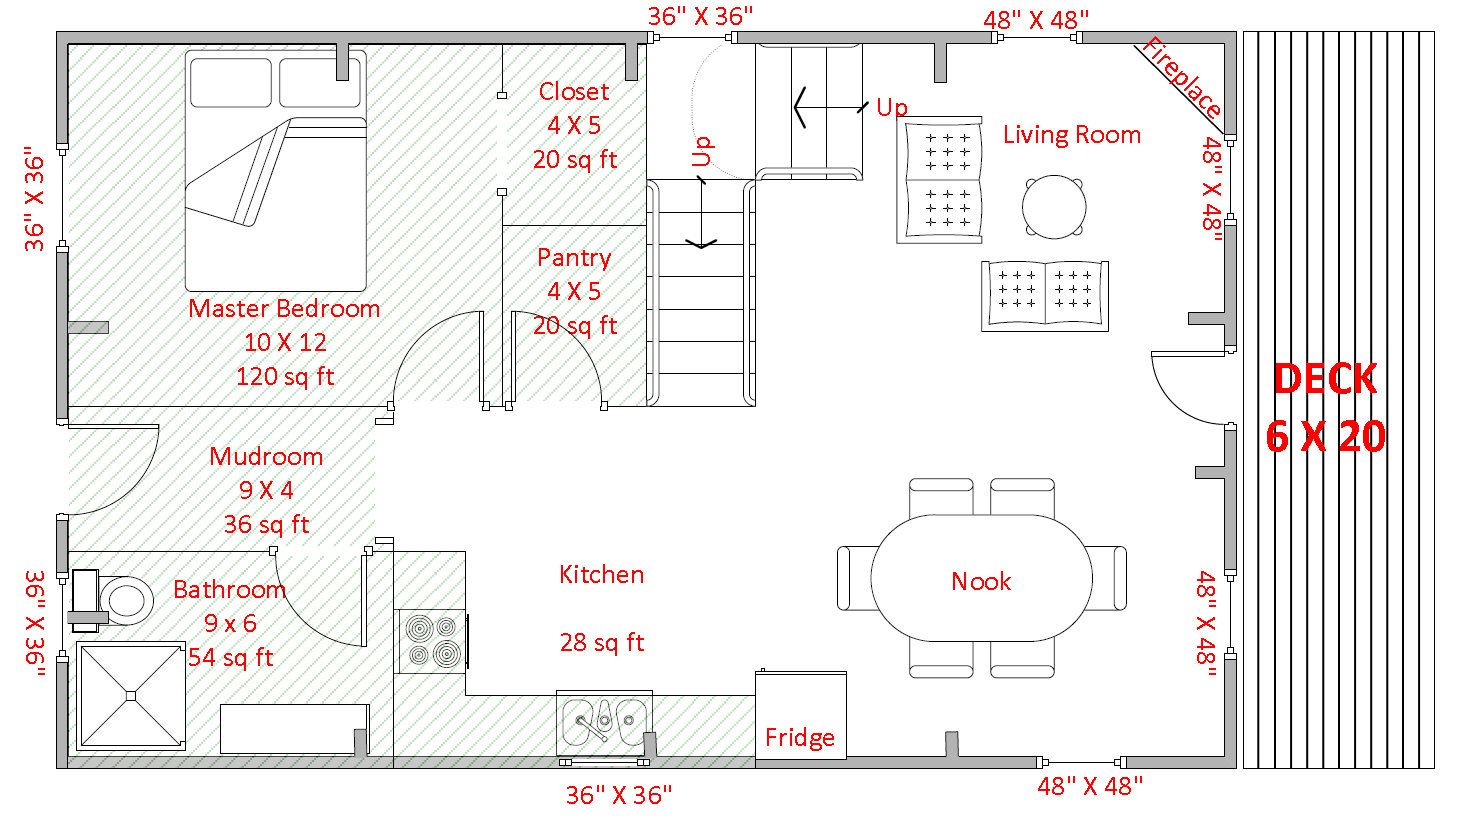 20' x 32' Sample Floor Plan  Please note: All floor plans are